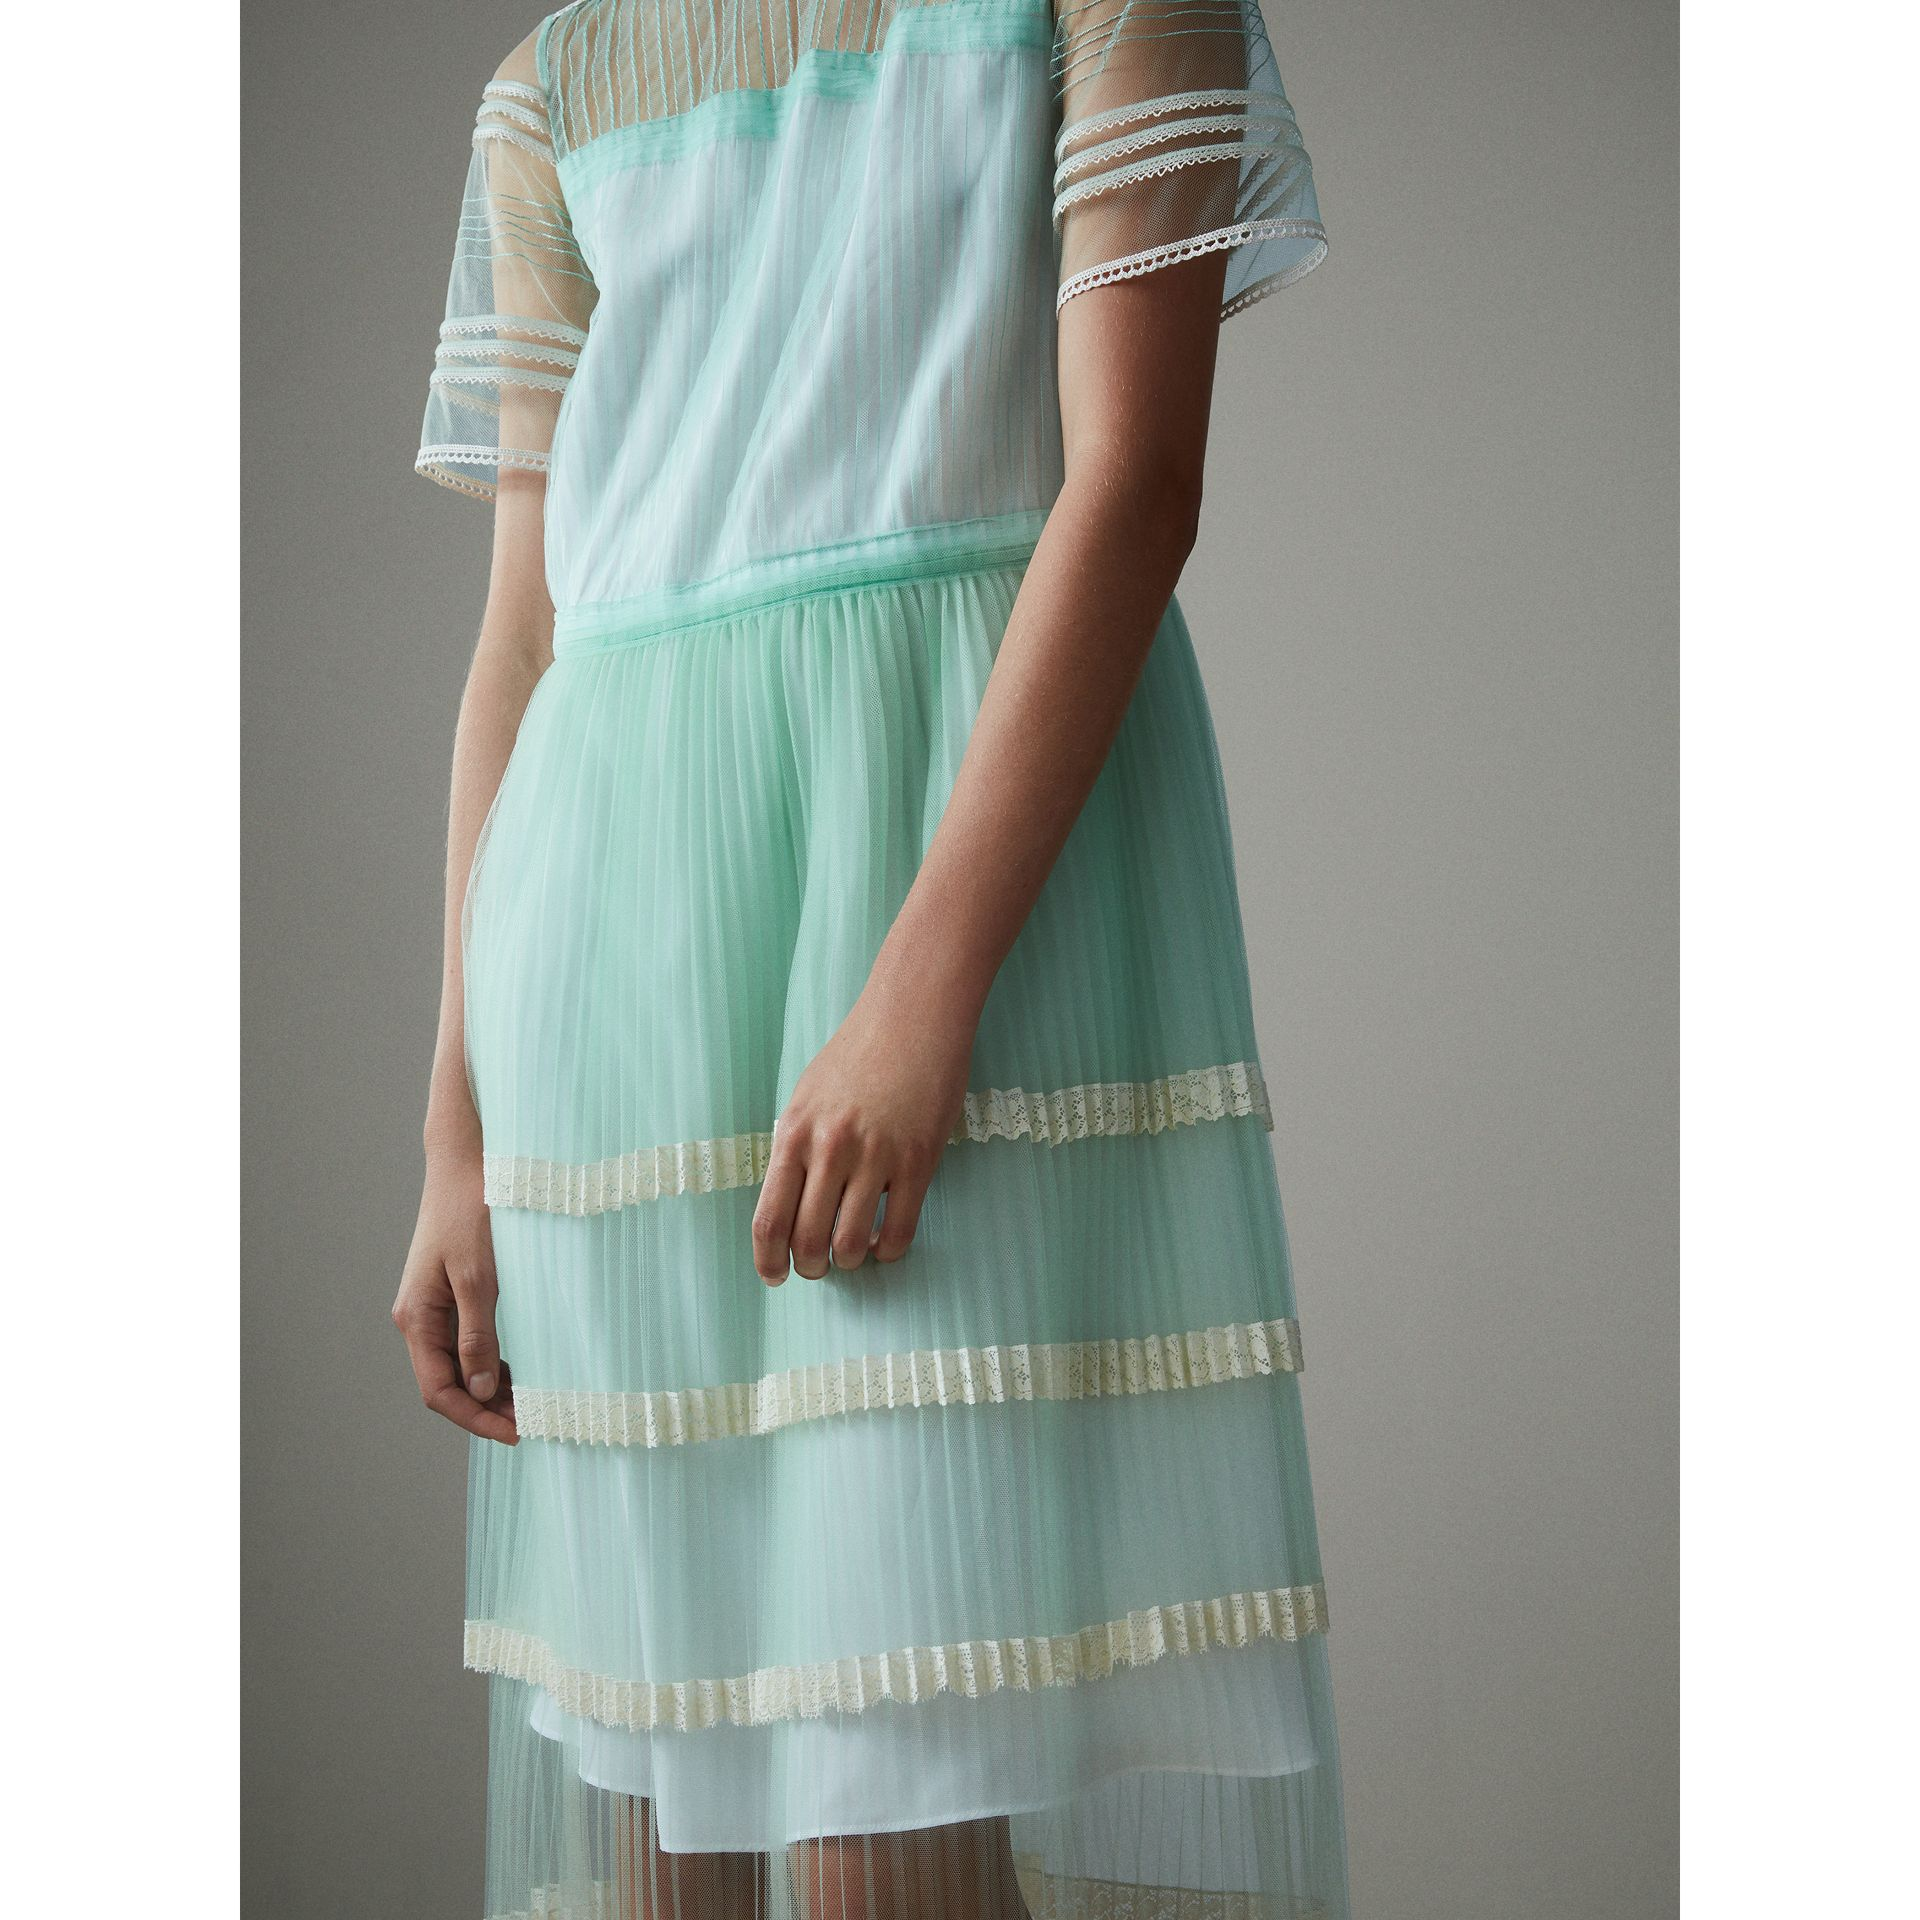 English Lace Trim Pleated Tulle Dress in Light Mint - Women | Burberry Singapore - gallery image 4